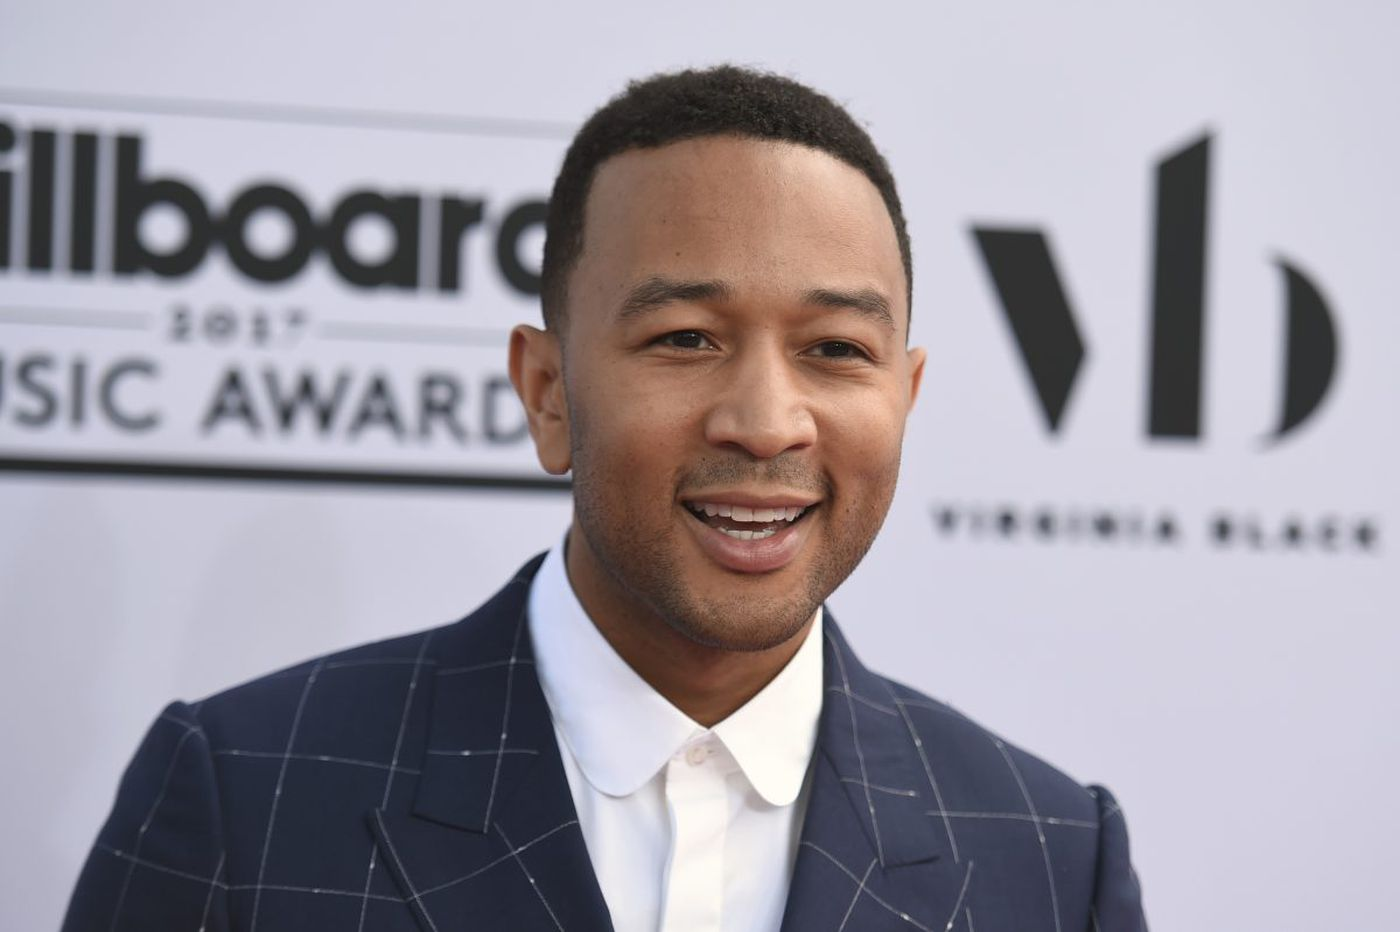 Penn alum John Legend's voice is coming to Google Assistant